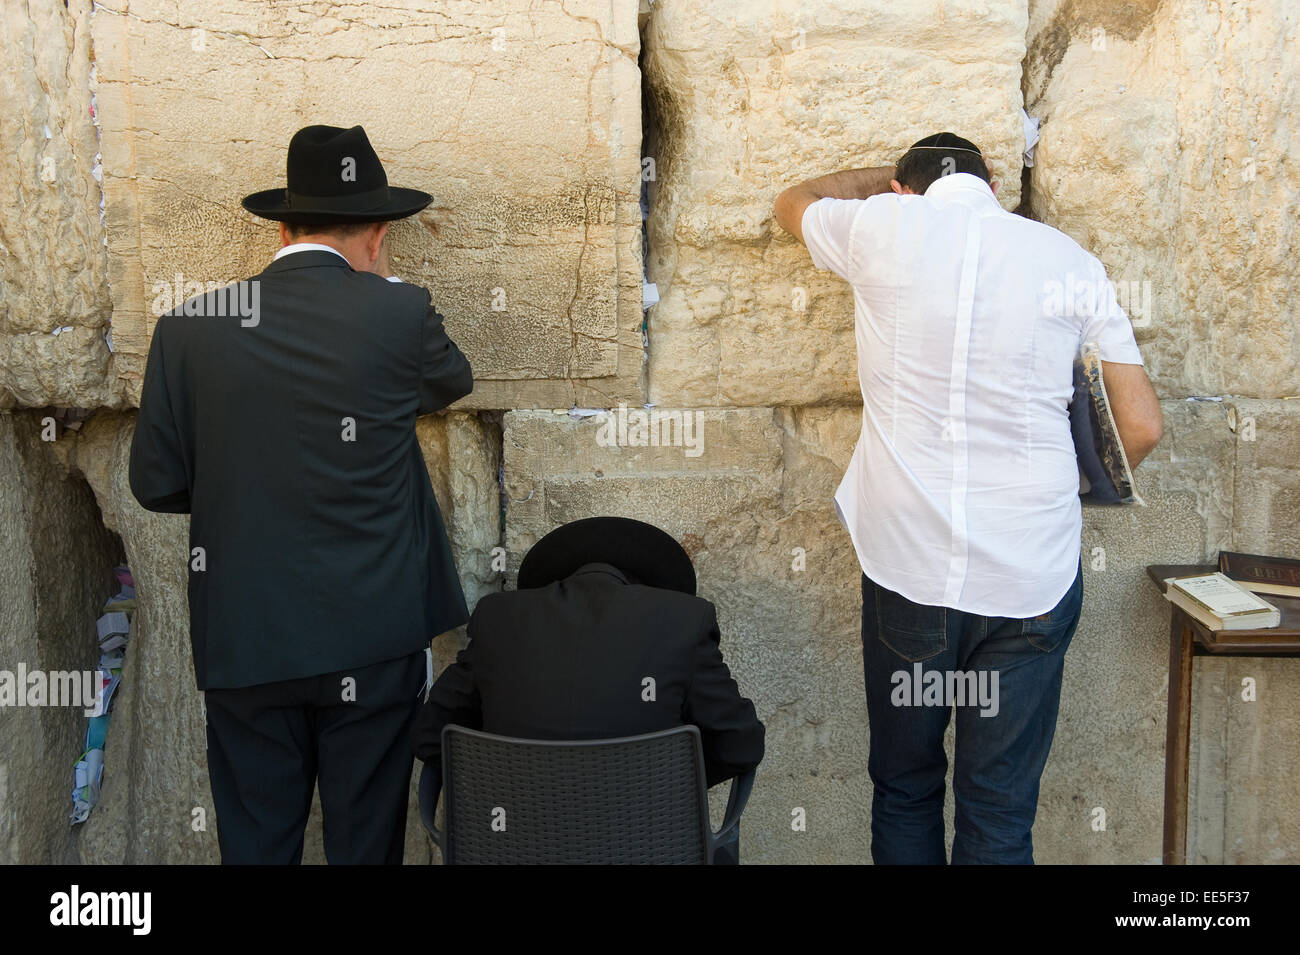 JERUSALEM, ISRAEL - OCT 06, 2014: Three jewish man are praying against the western wall in the old city of Jerusalem - Stock Image